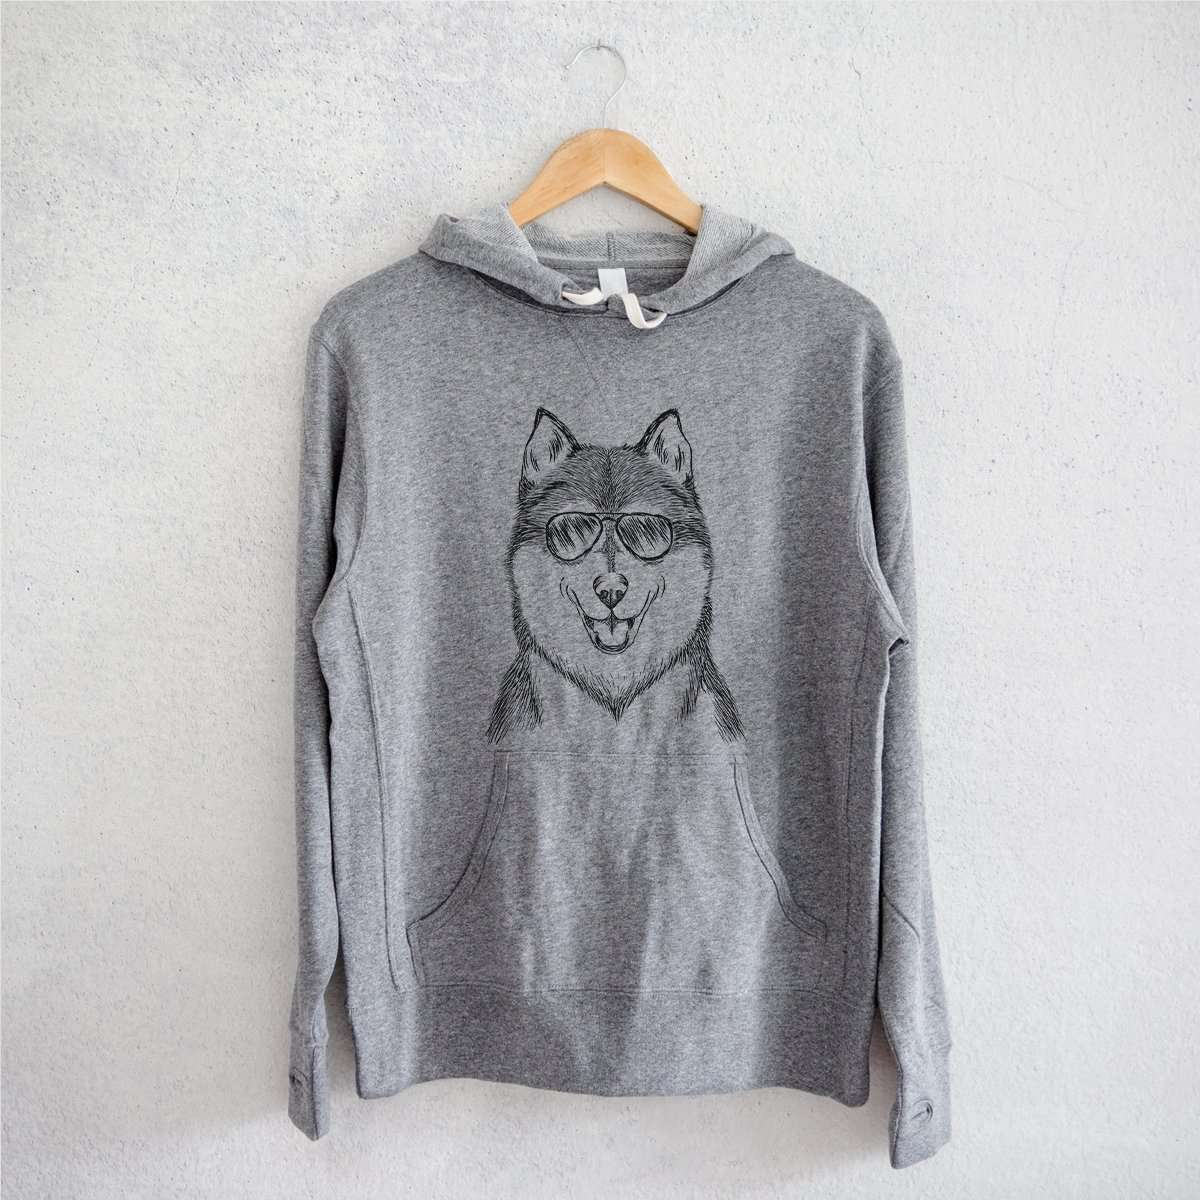 Koda the Husky - French Terry Hooded Sweatshirt